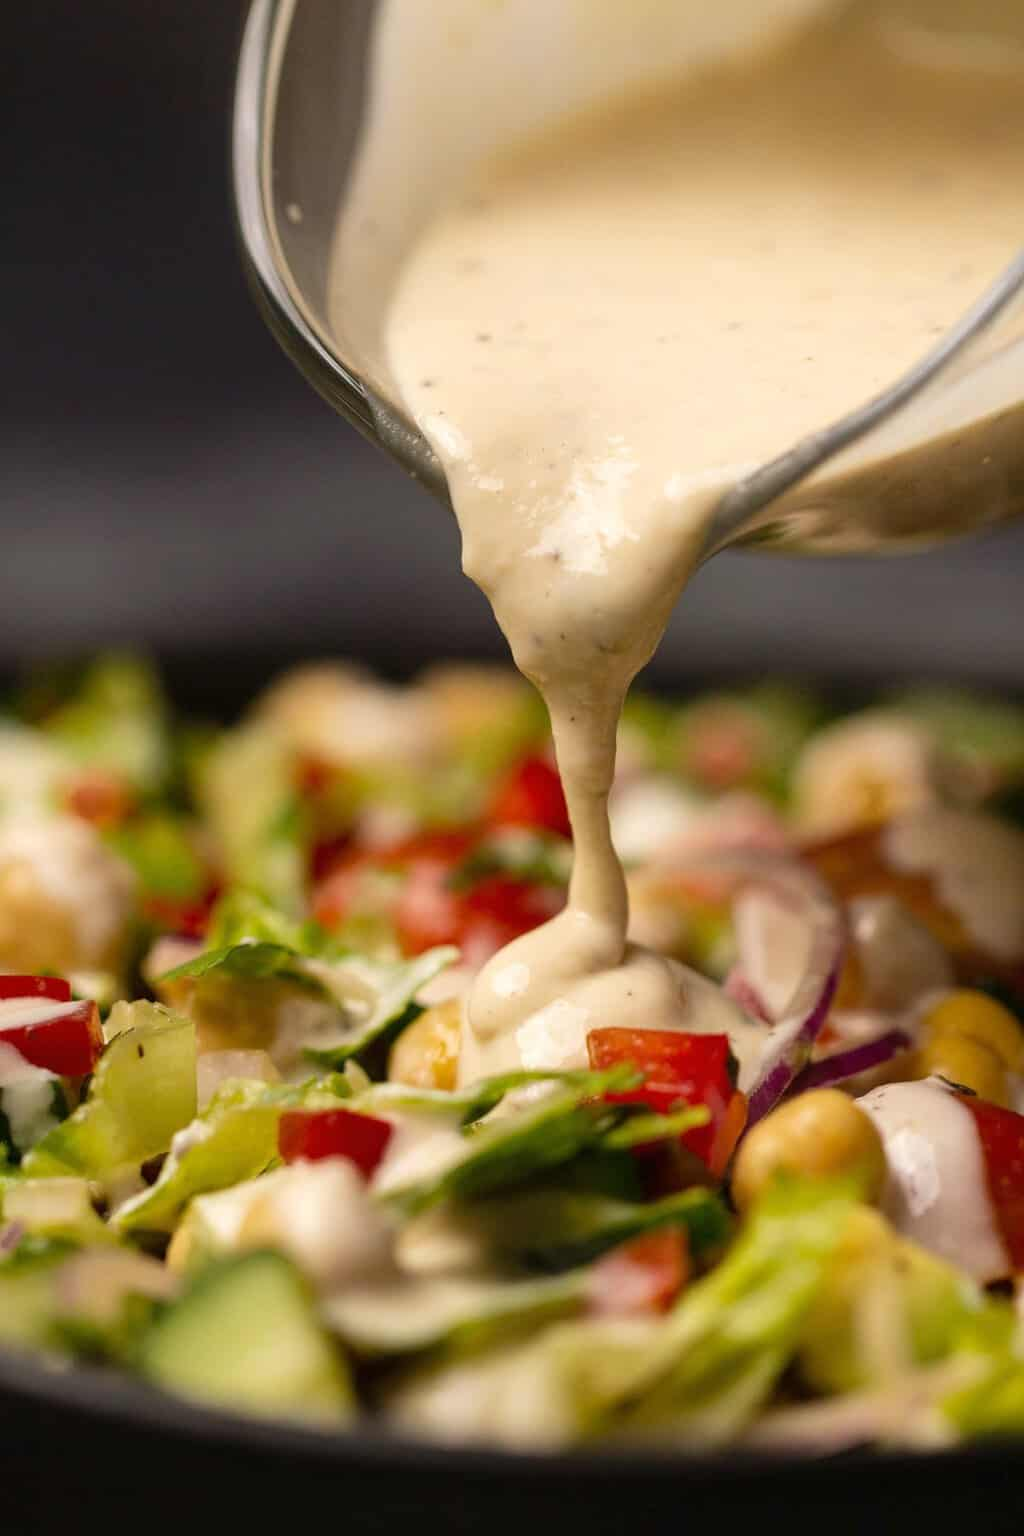 Tahini salad dressing pouring onto a bowl of chickpea salad.